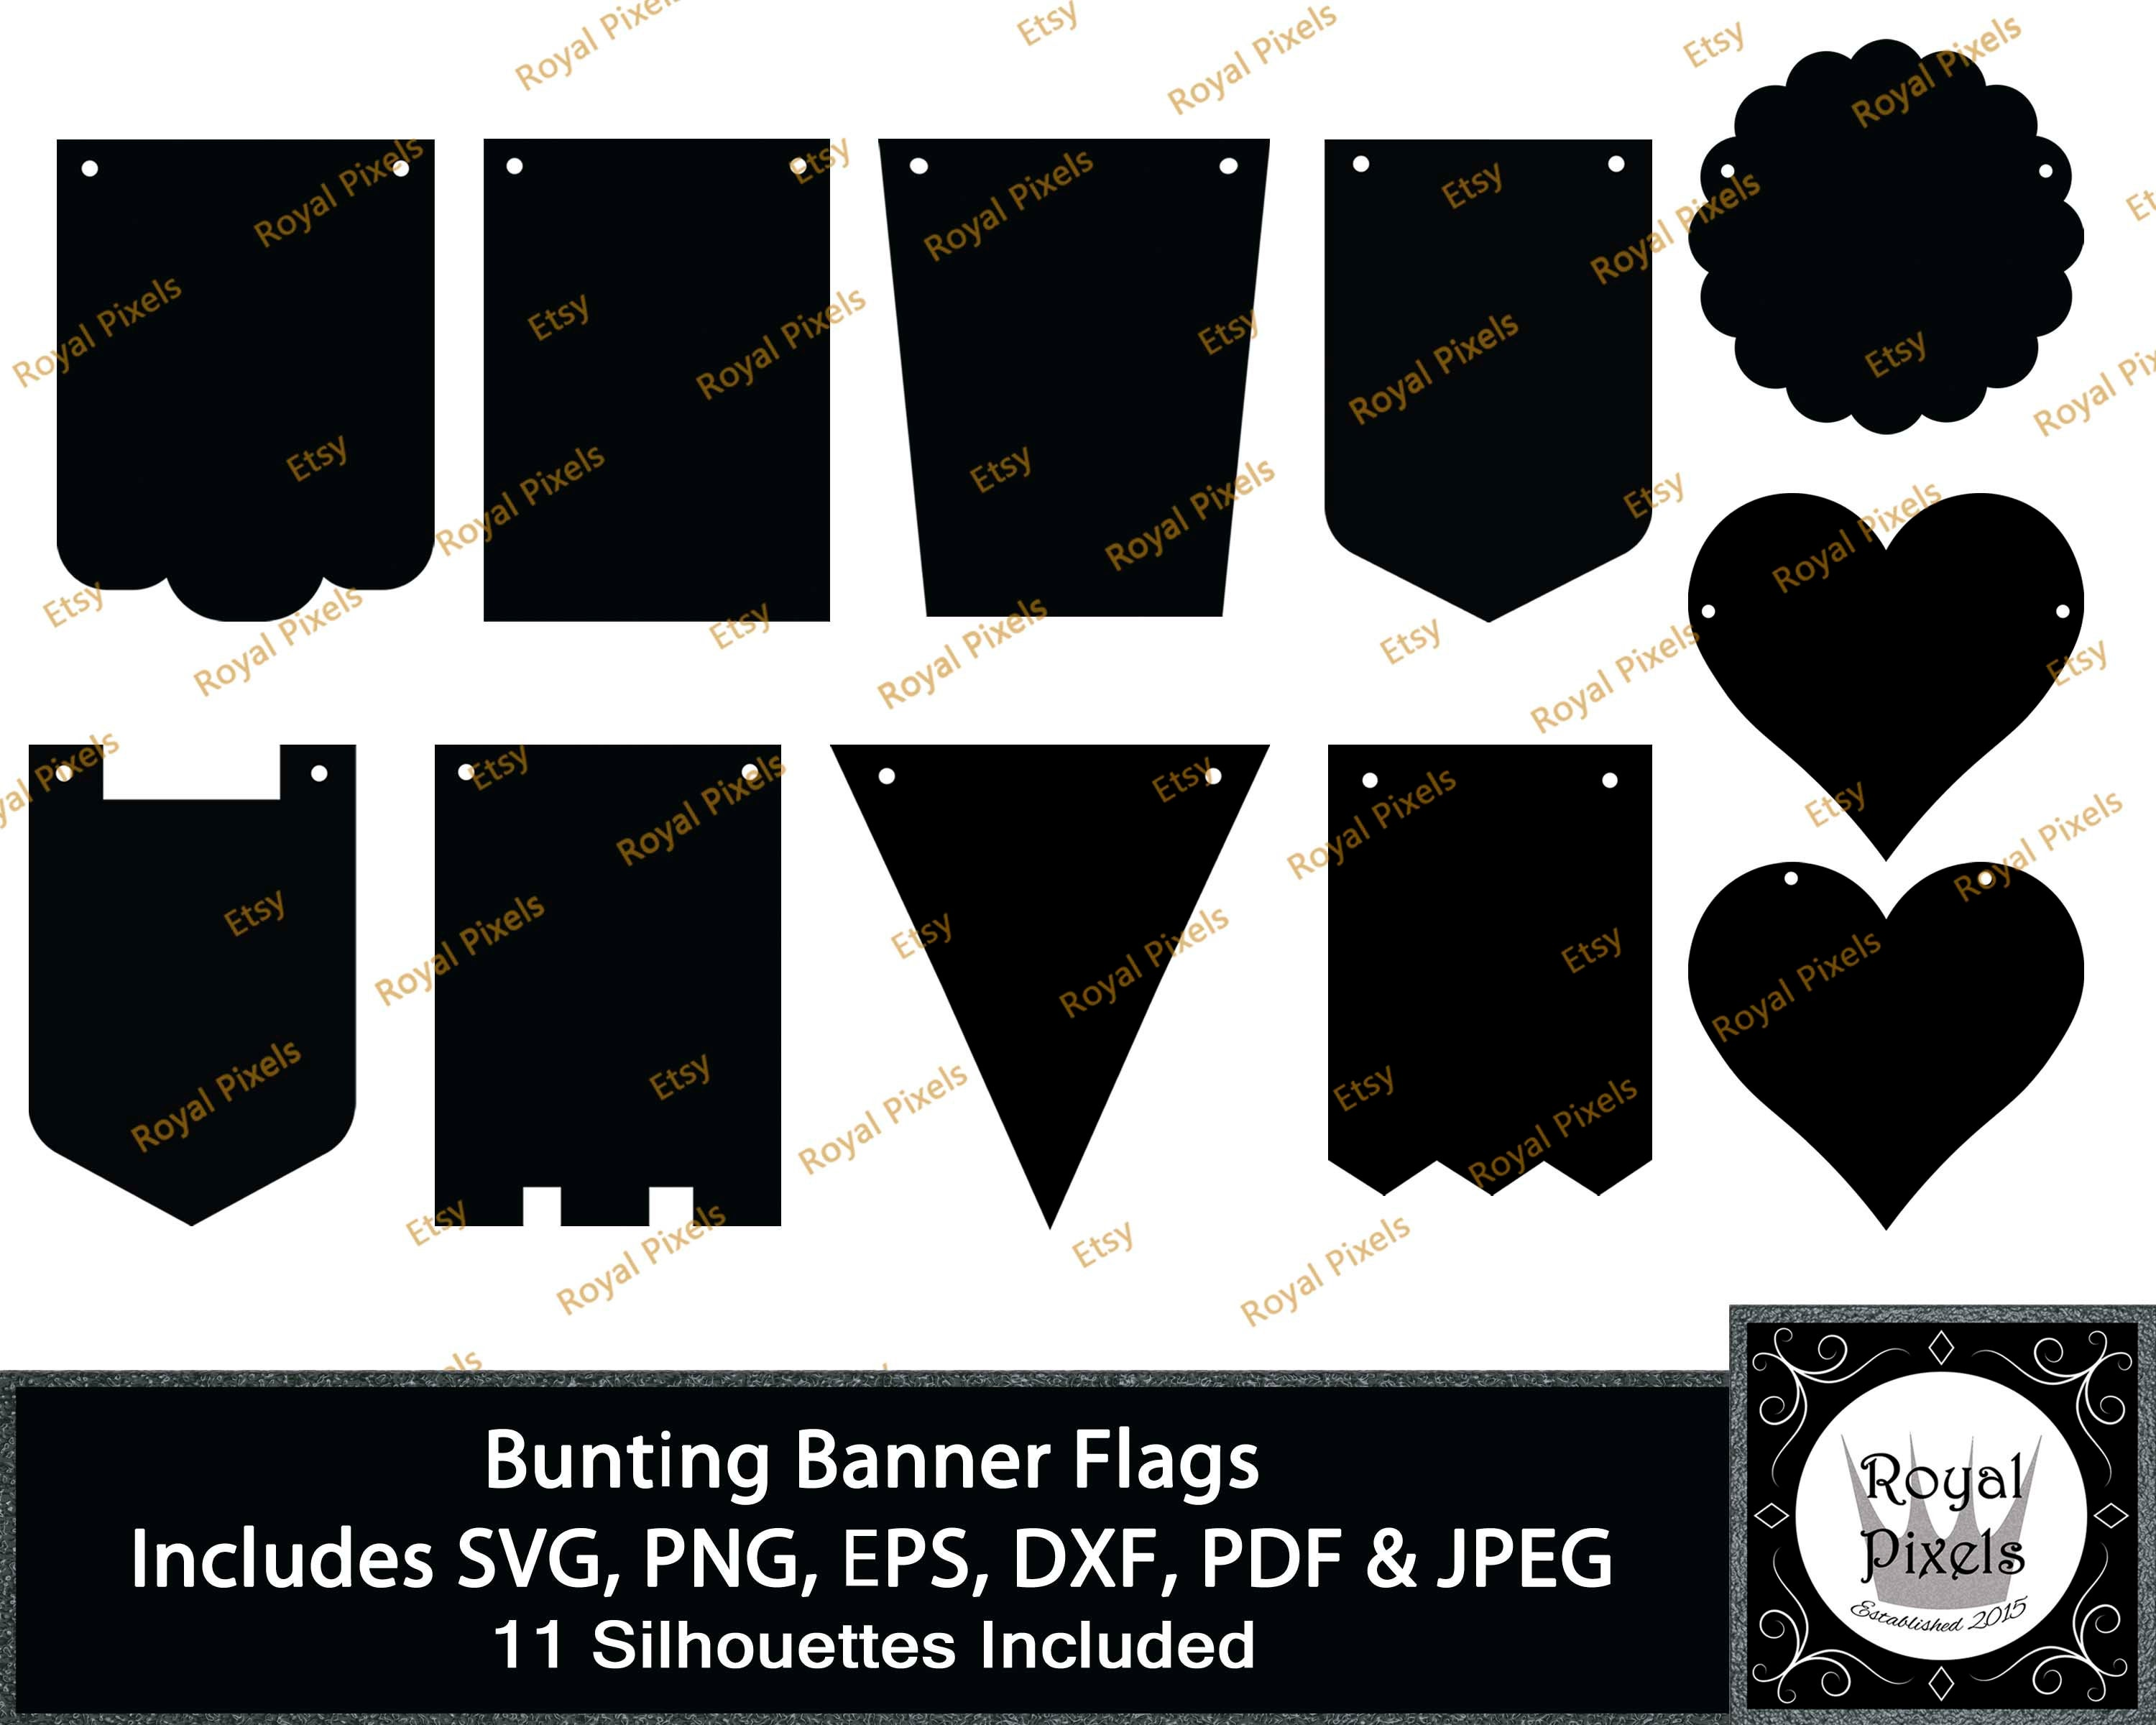 Bunting Banner Flag Silhouette Clip Art Set, Banner Flags, Banner Pennants,  11 Piece, 7 inches, Instant Download, Cutting File, Cut File #23.